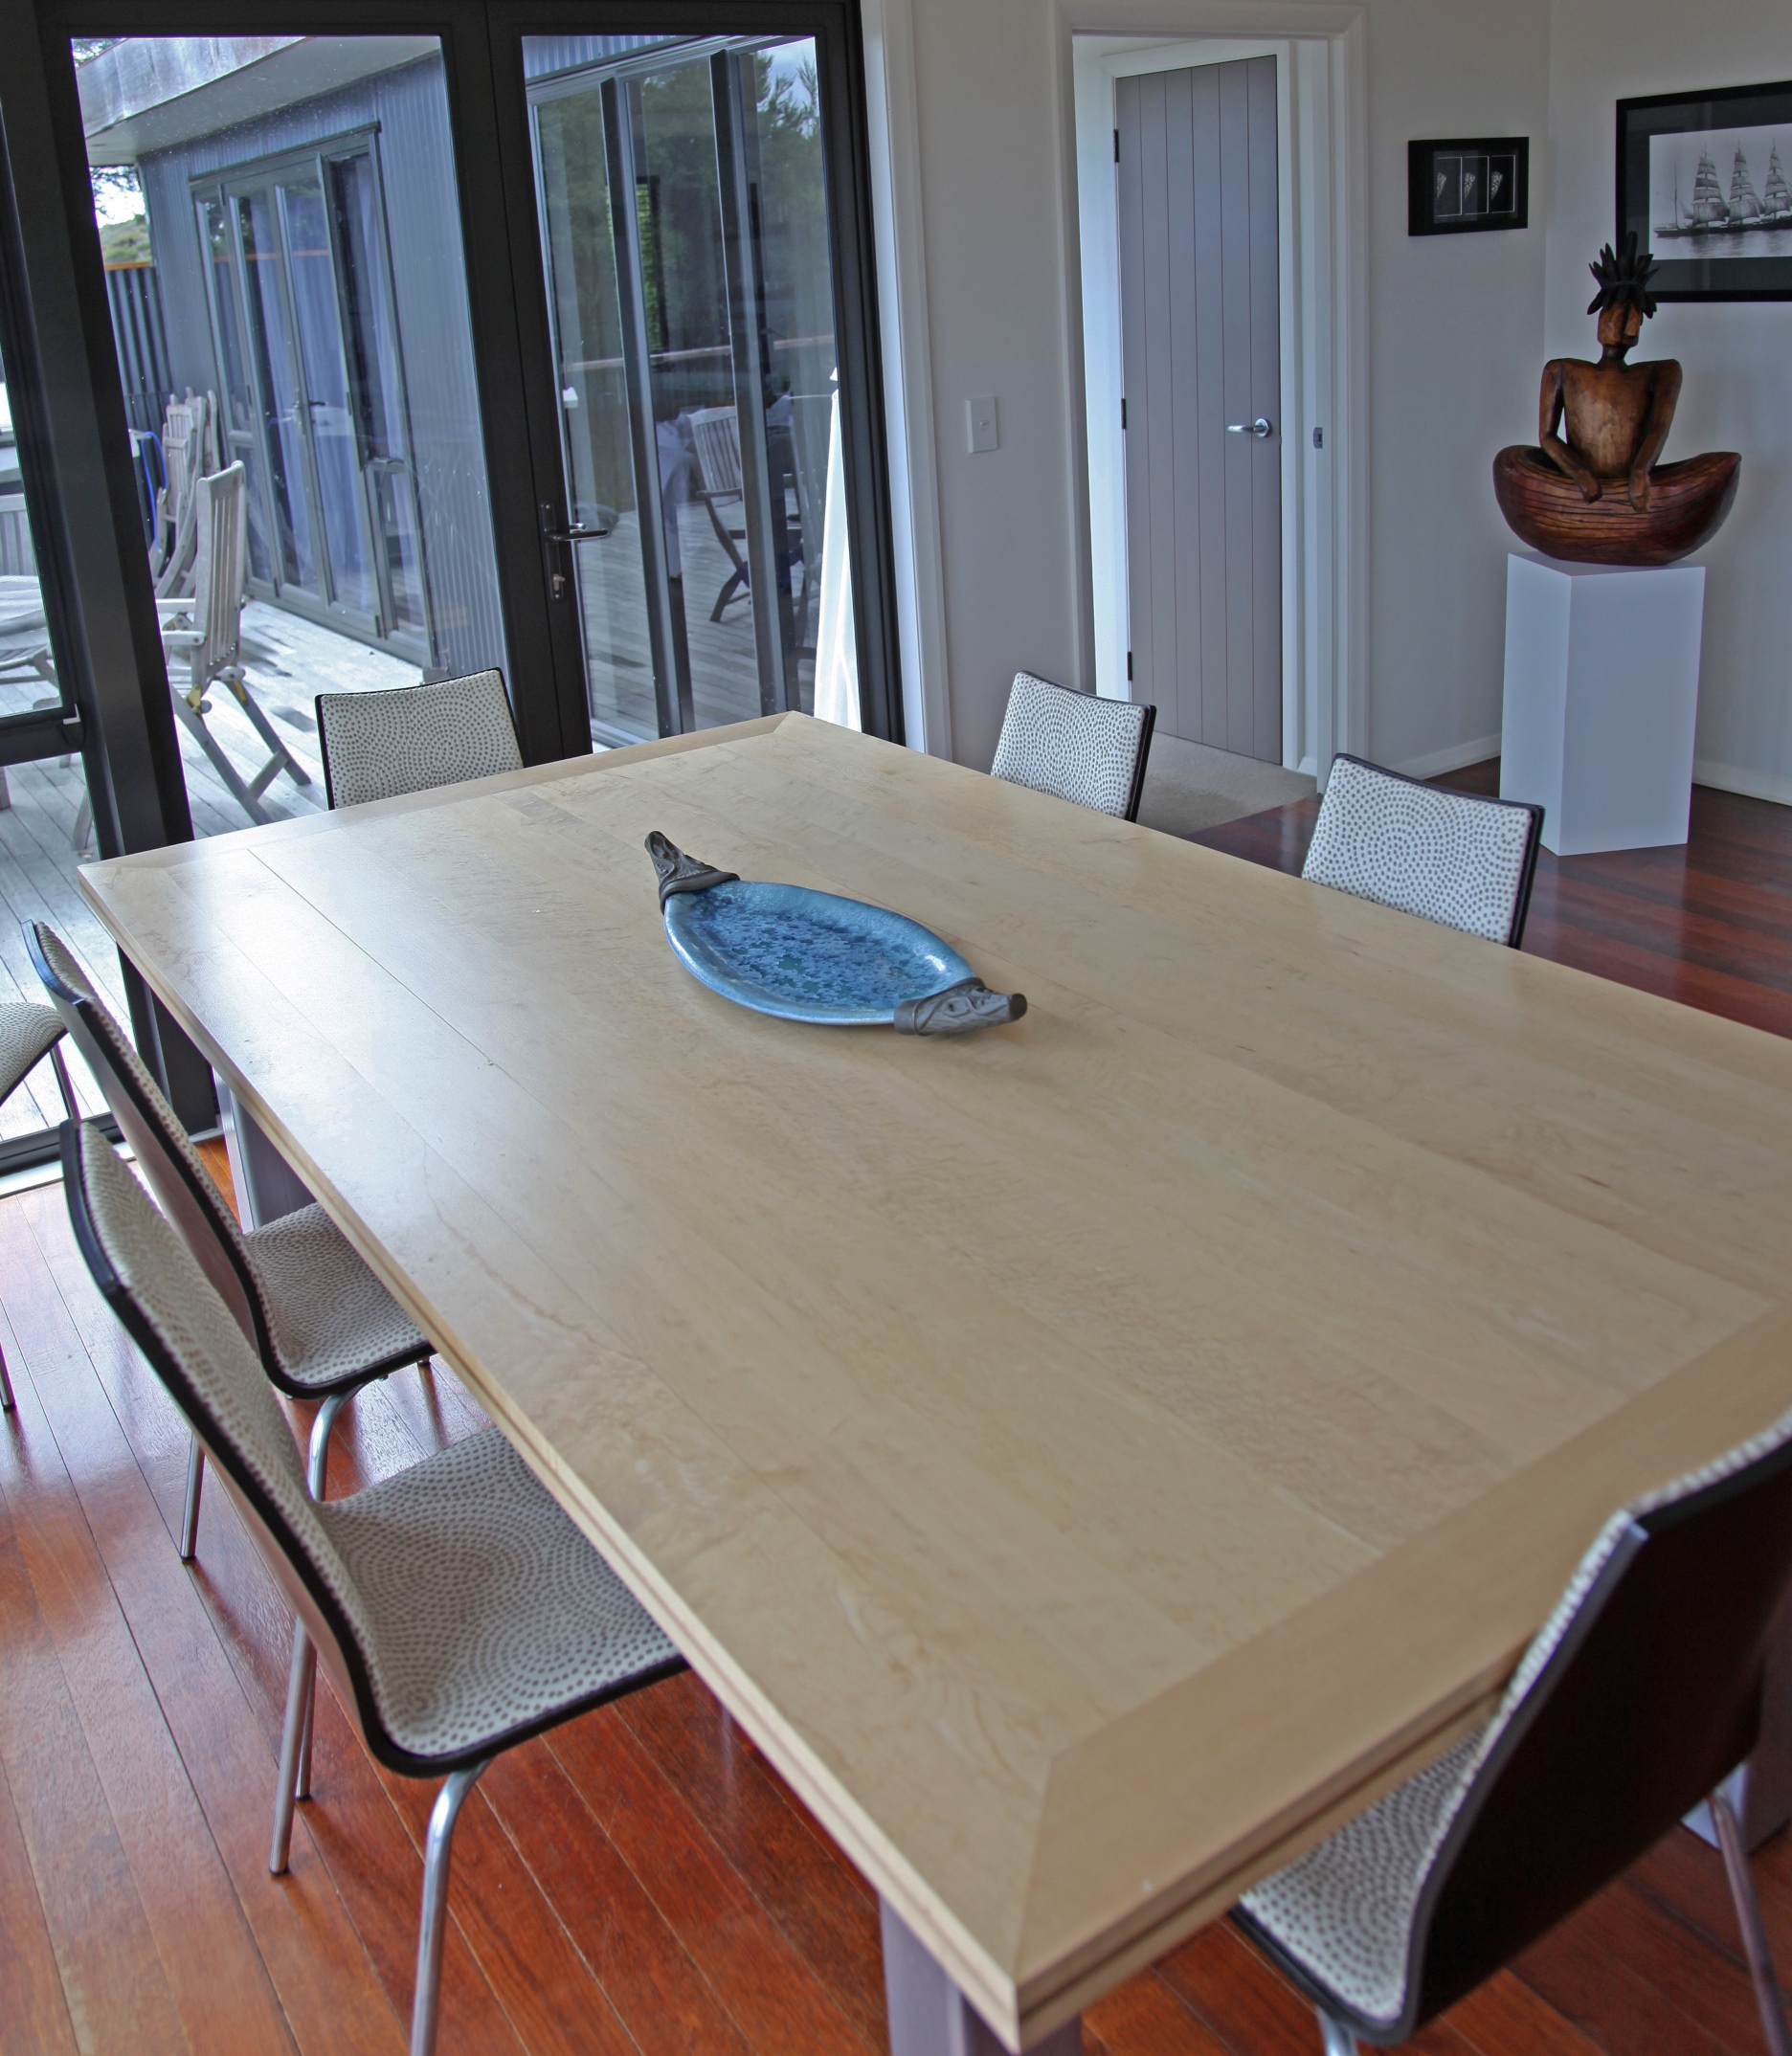 NZ Dining table